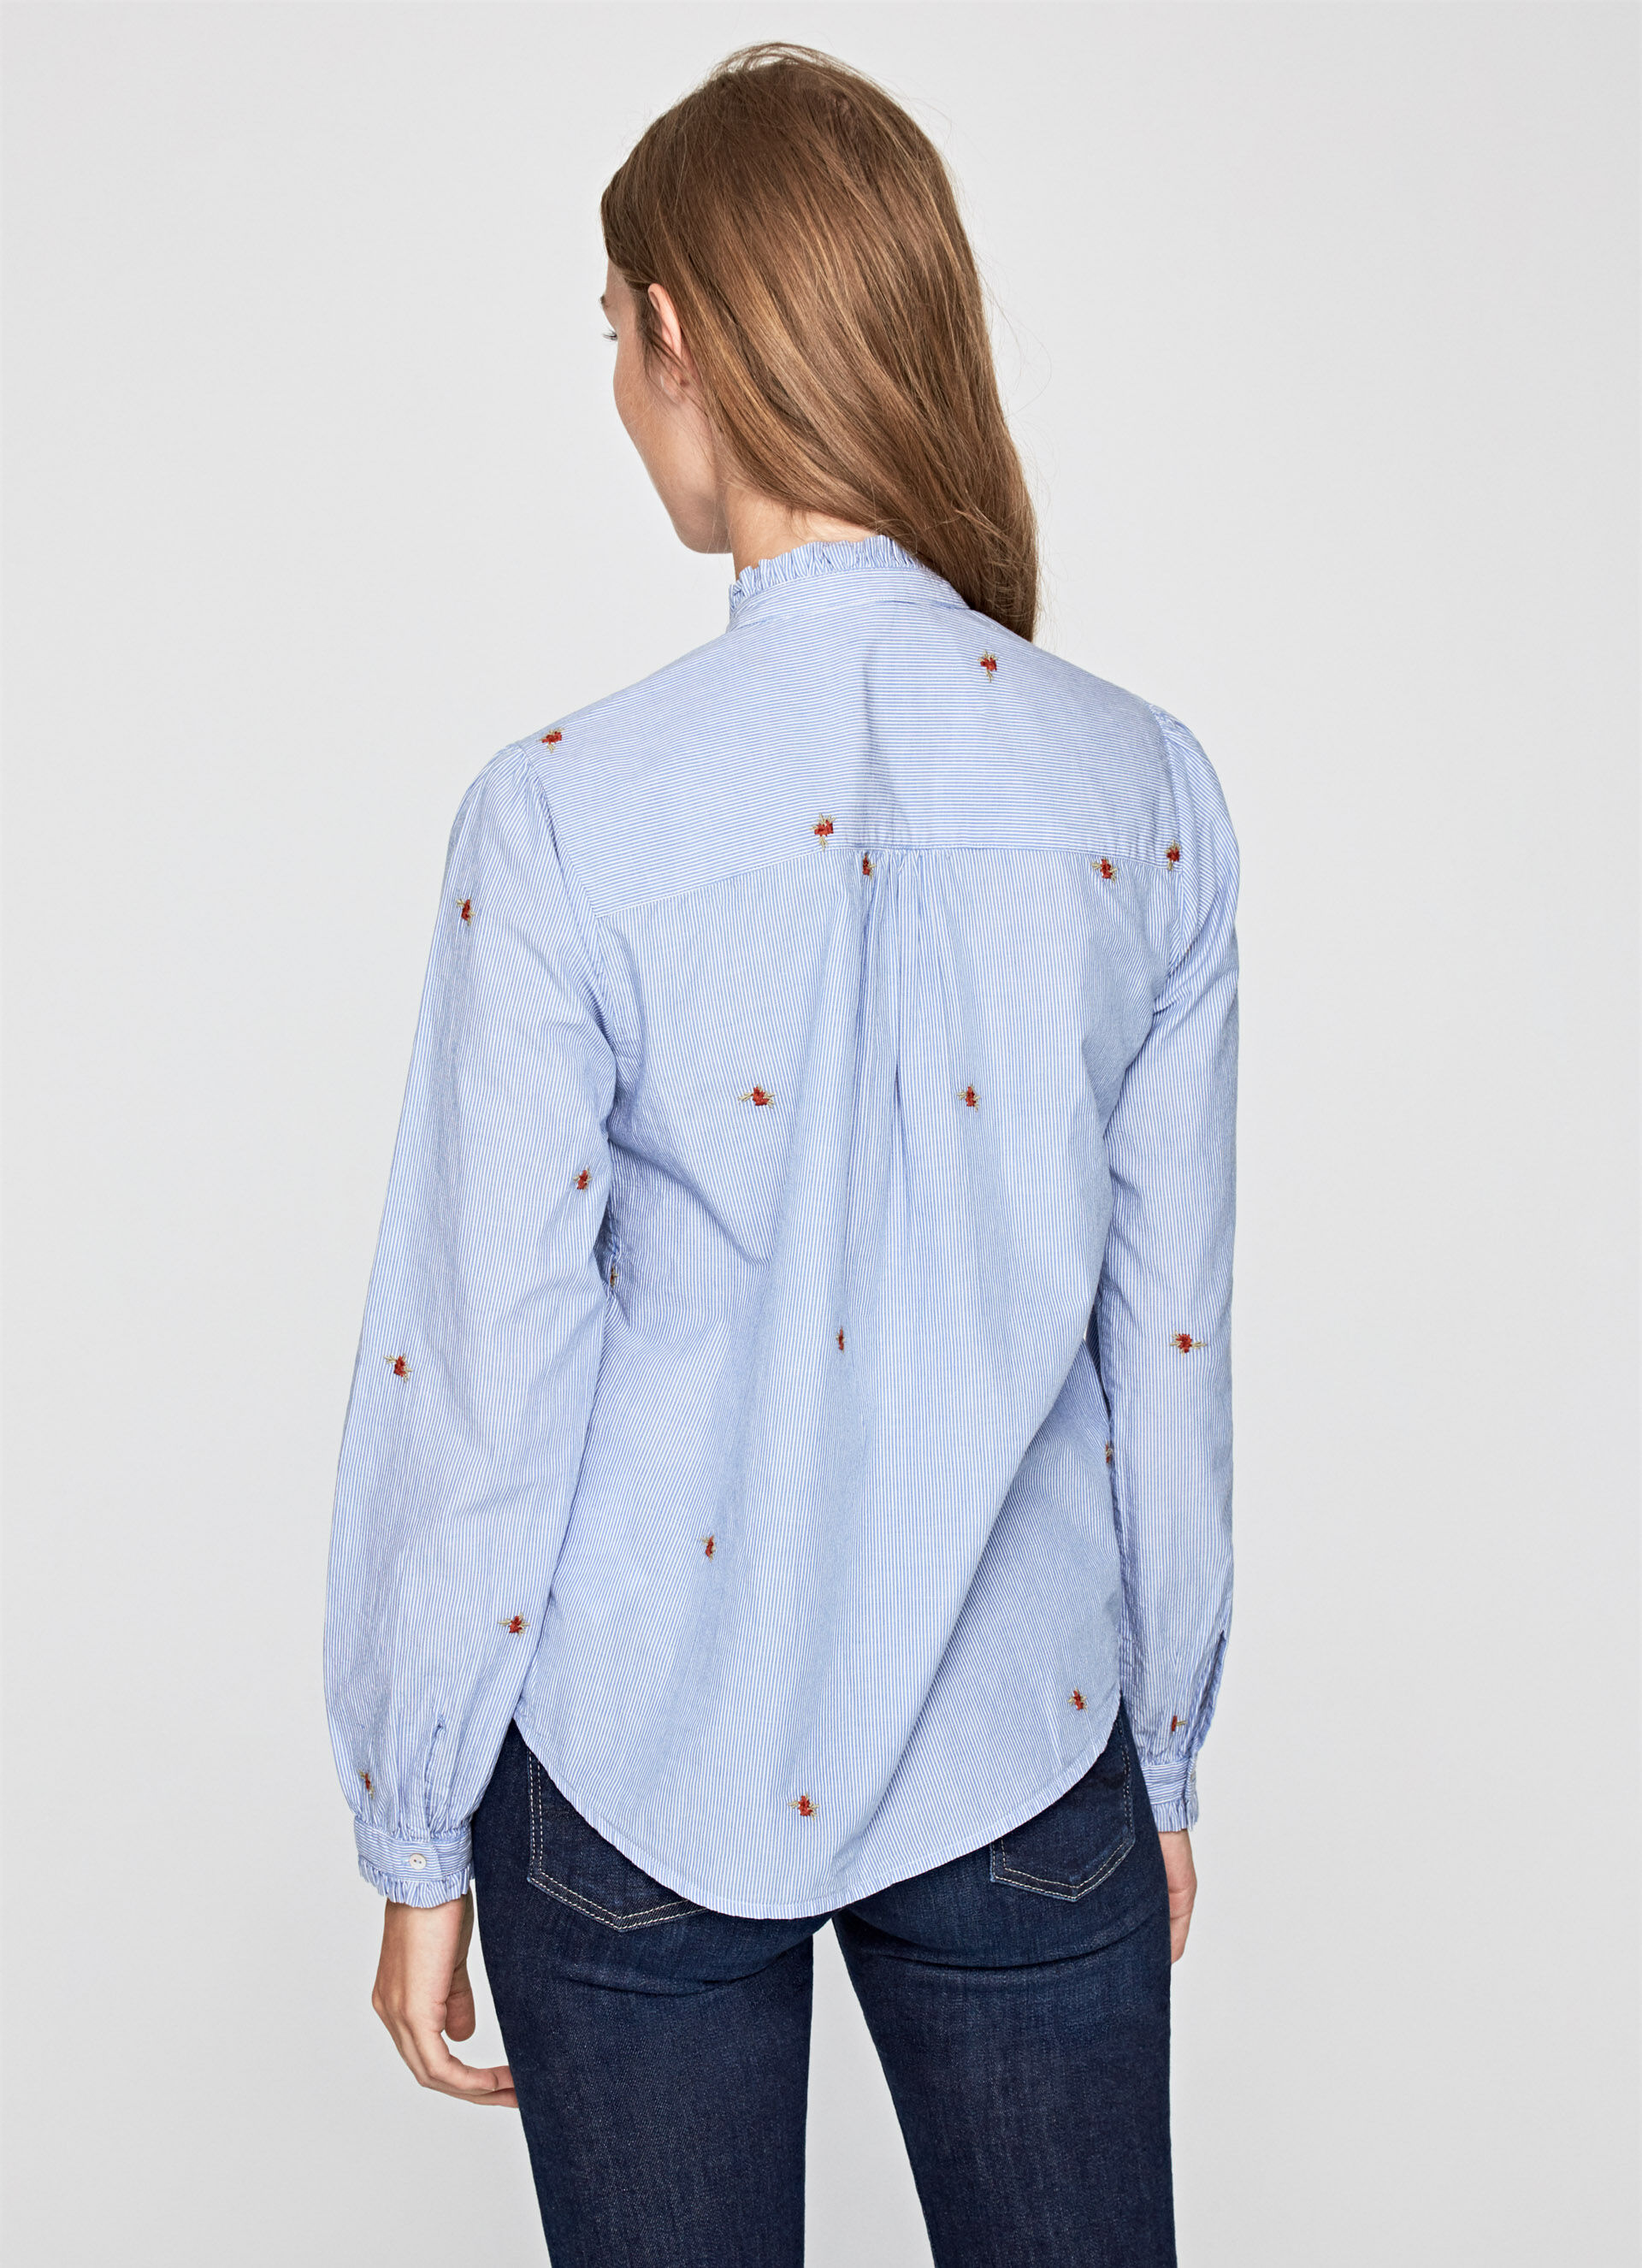 Pepe Jeans Girls Lilly Jeans